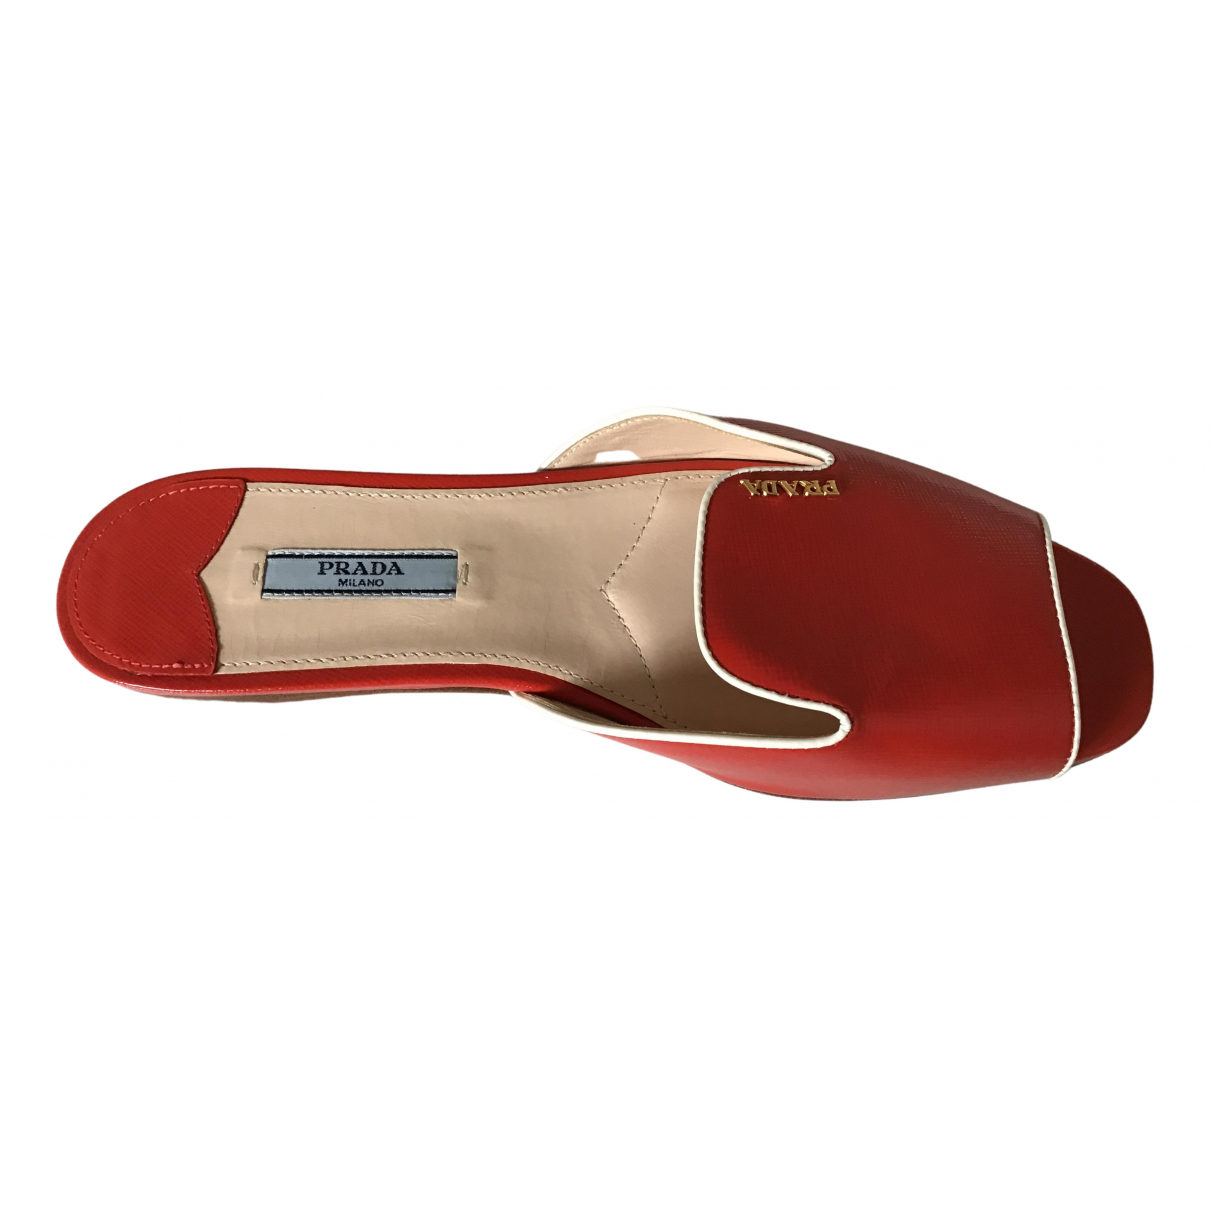 Prada \N Red Leather Flats for Women 8.5 US